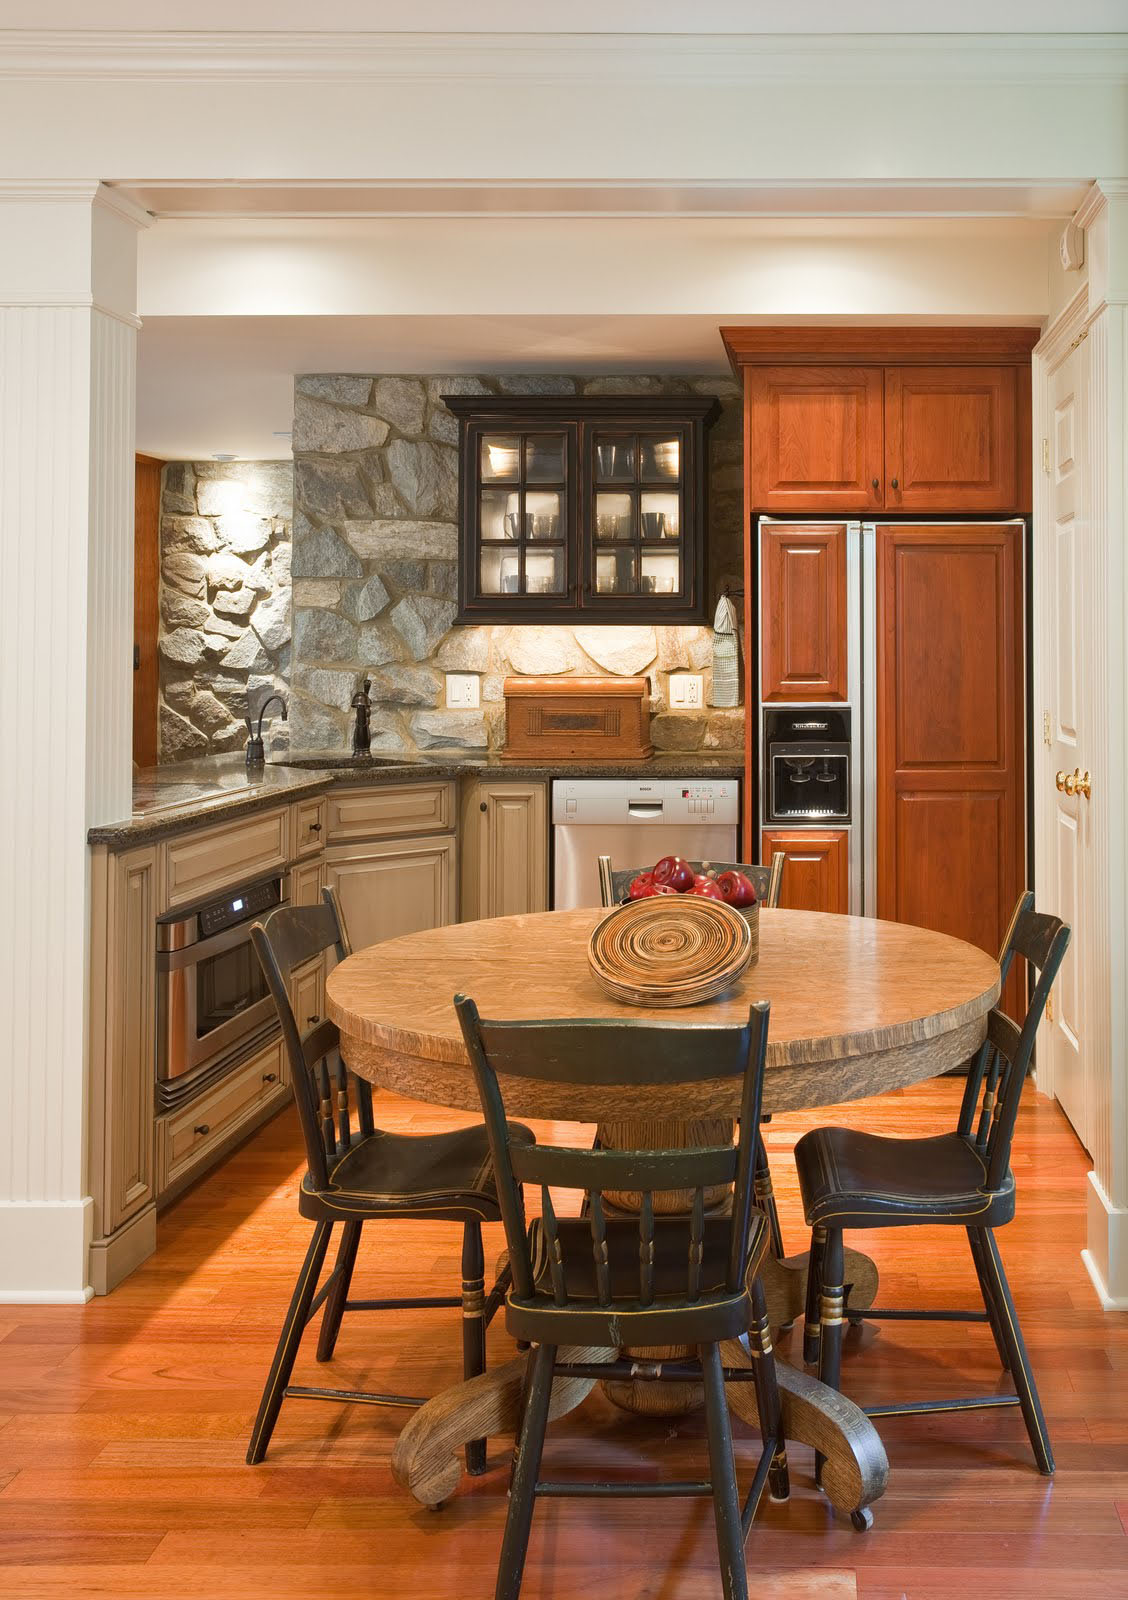 kitchen island for small tuscany faucet basement renovation with rustic stone walls | idesignarch ...